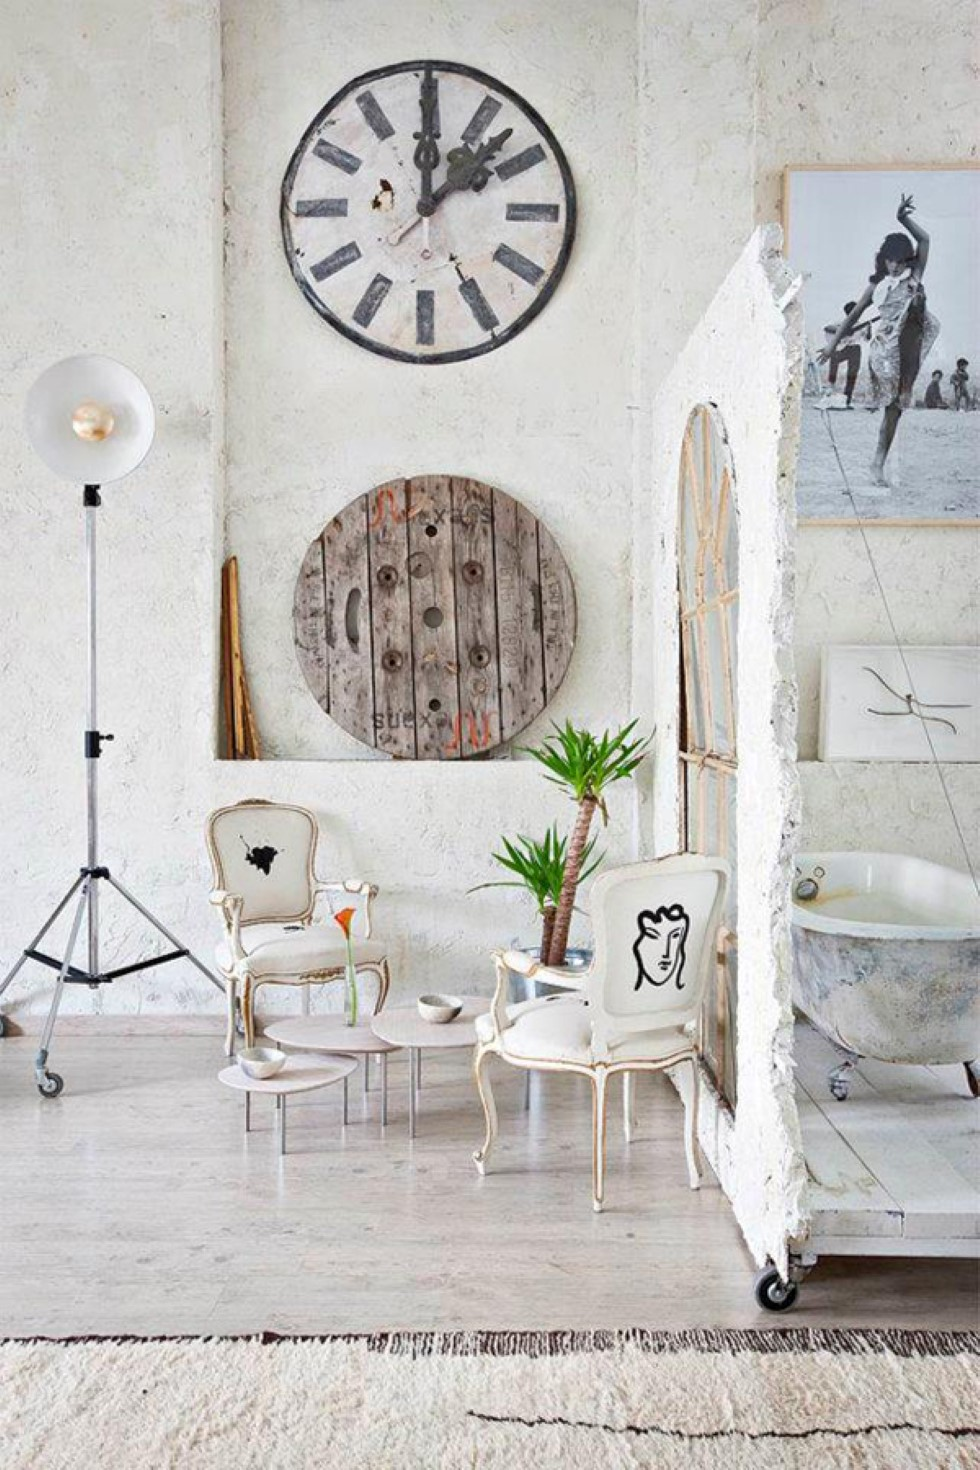 Bohemian Apartment Decor To Close The Artistic Year With